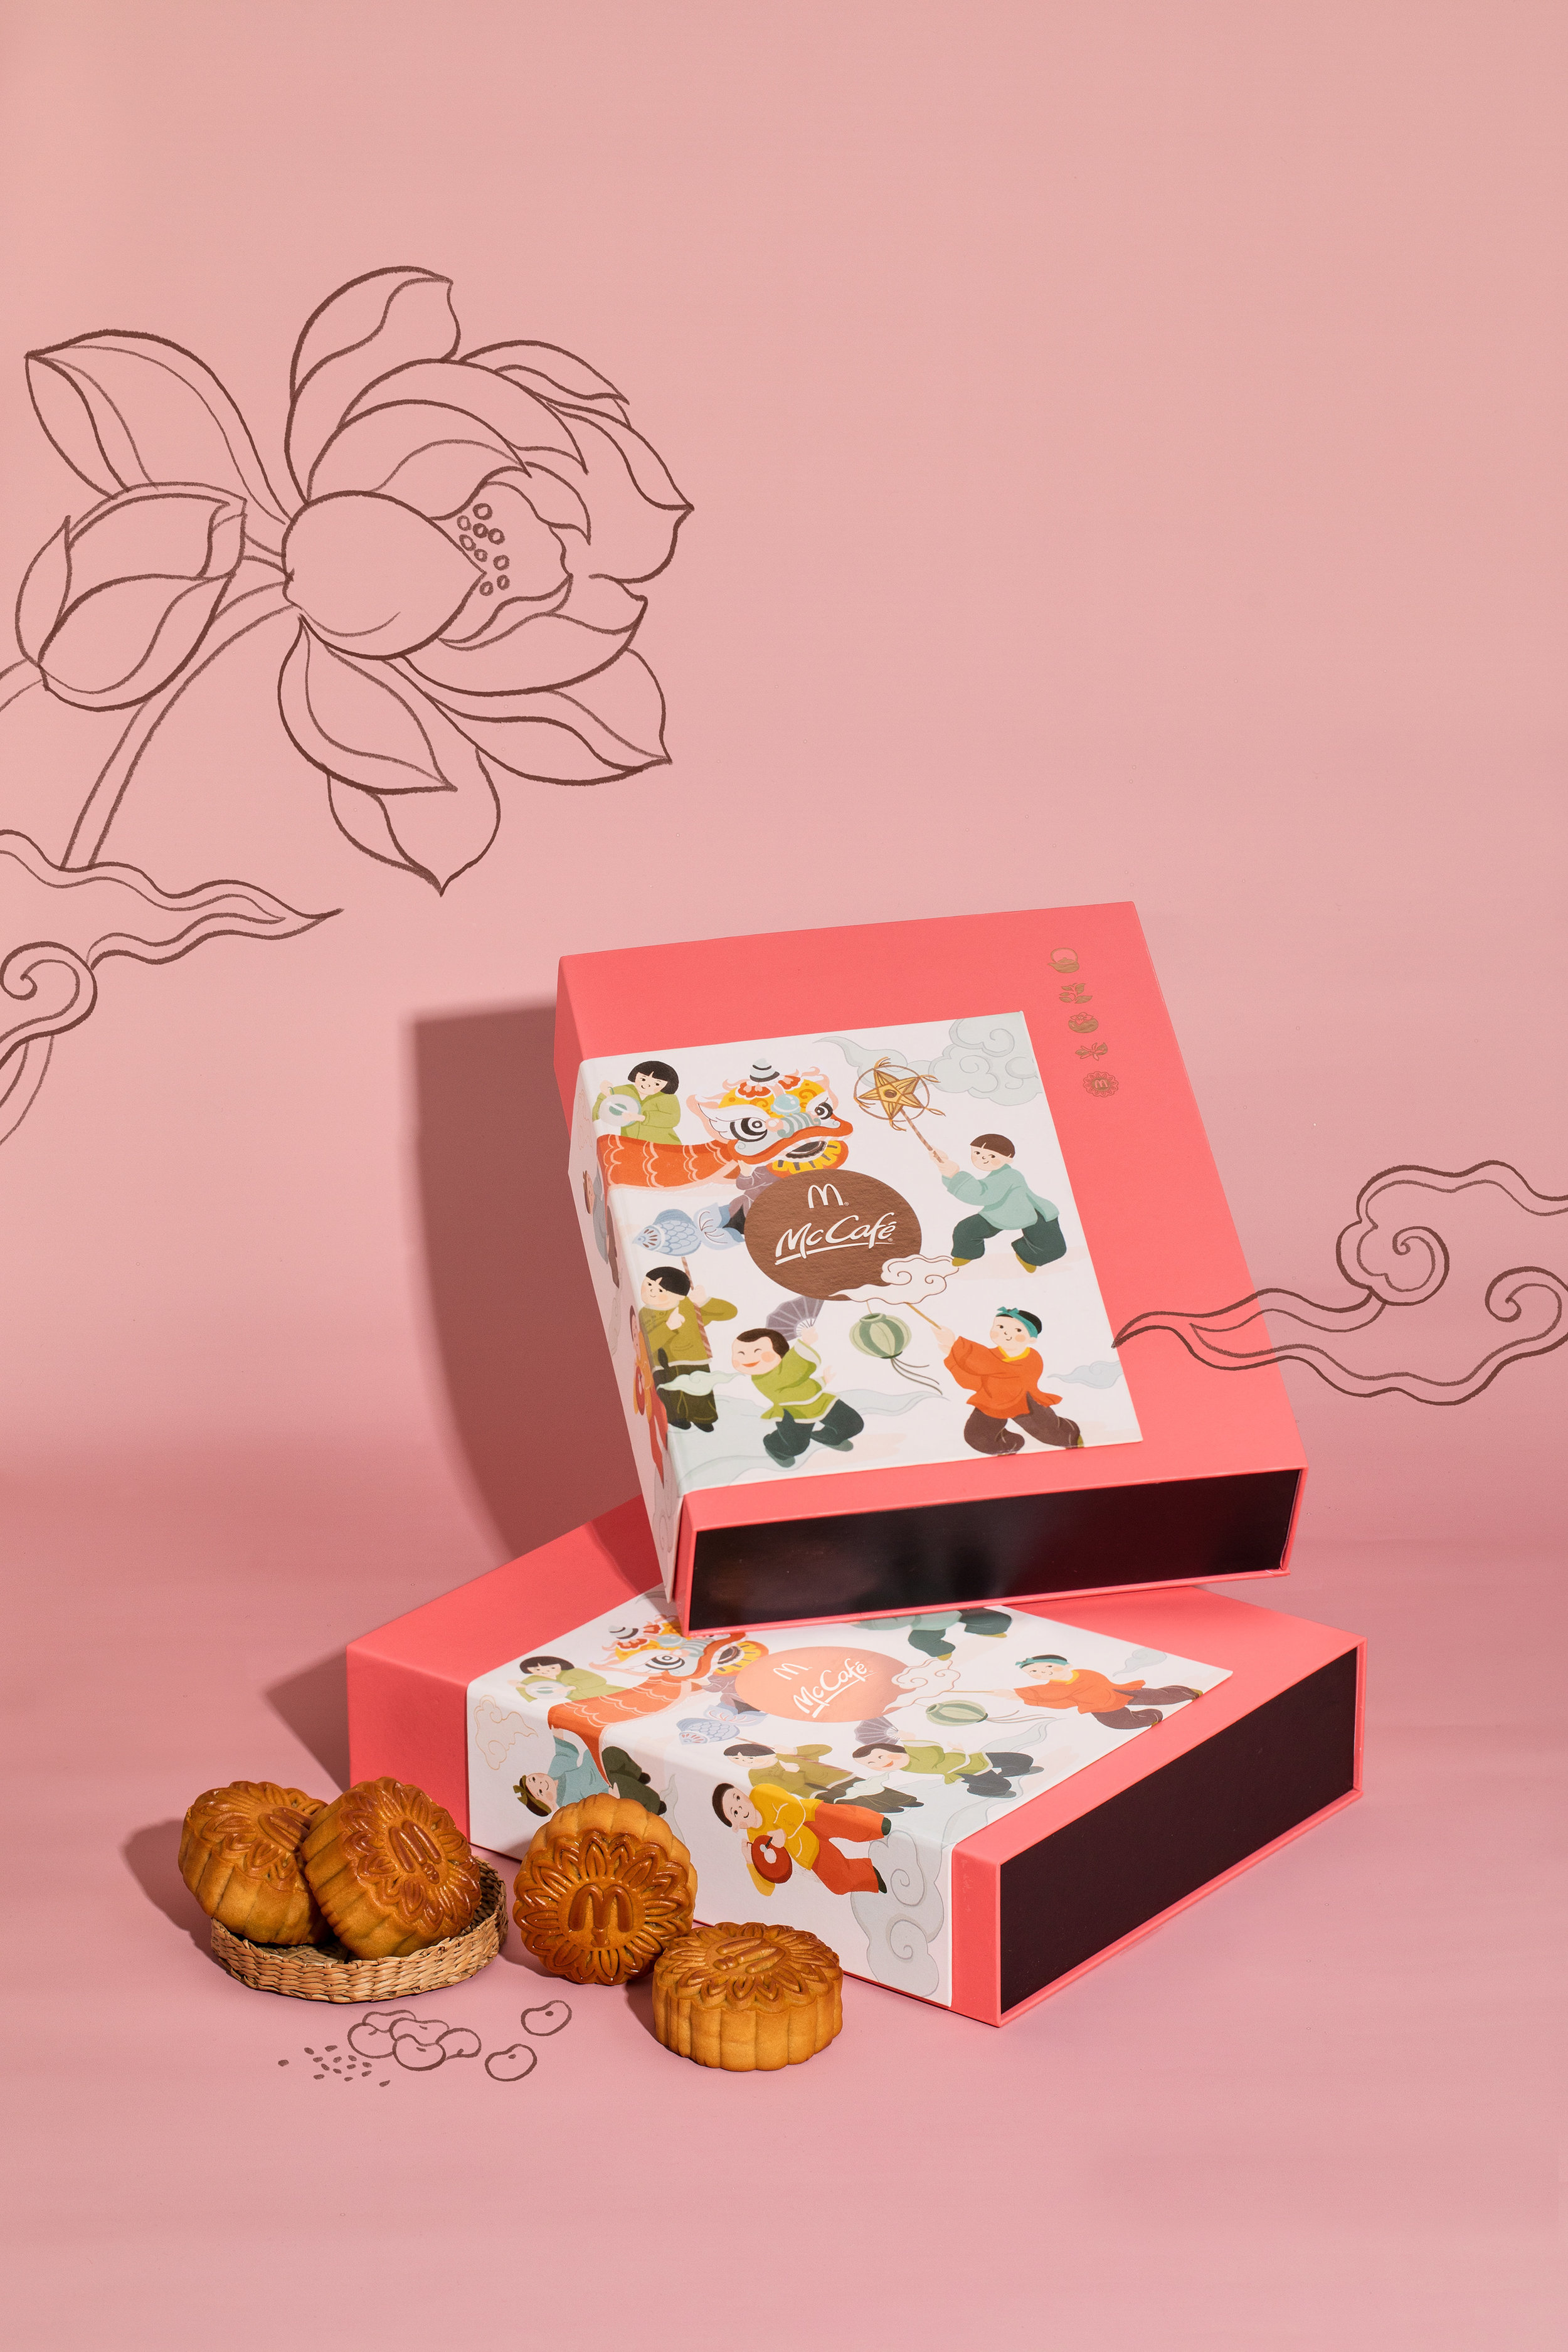 McDonald's Vietnam Mooncake Design 2018